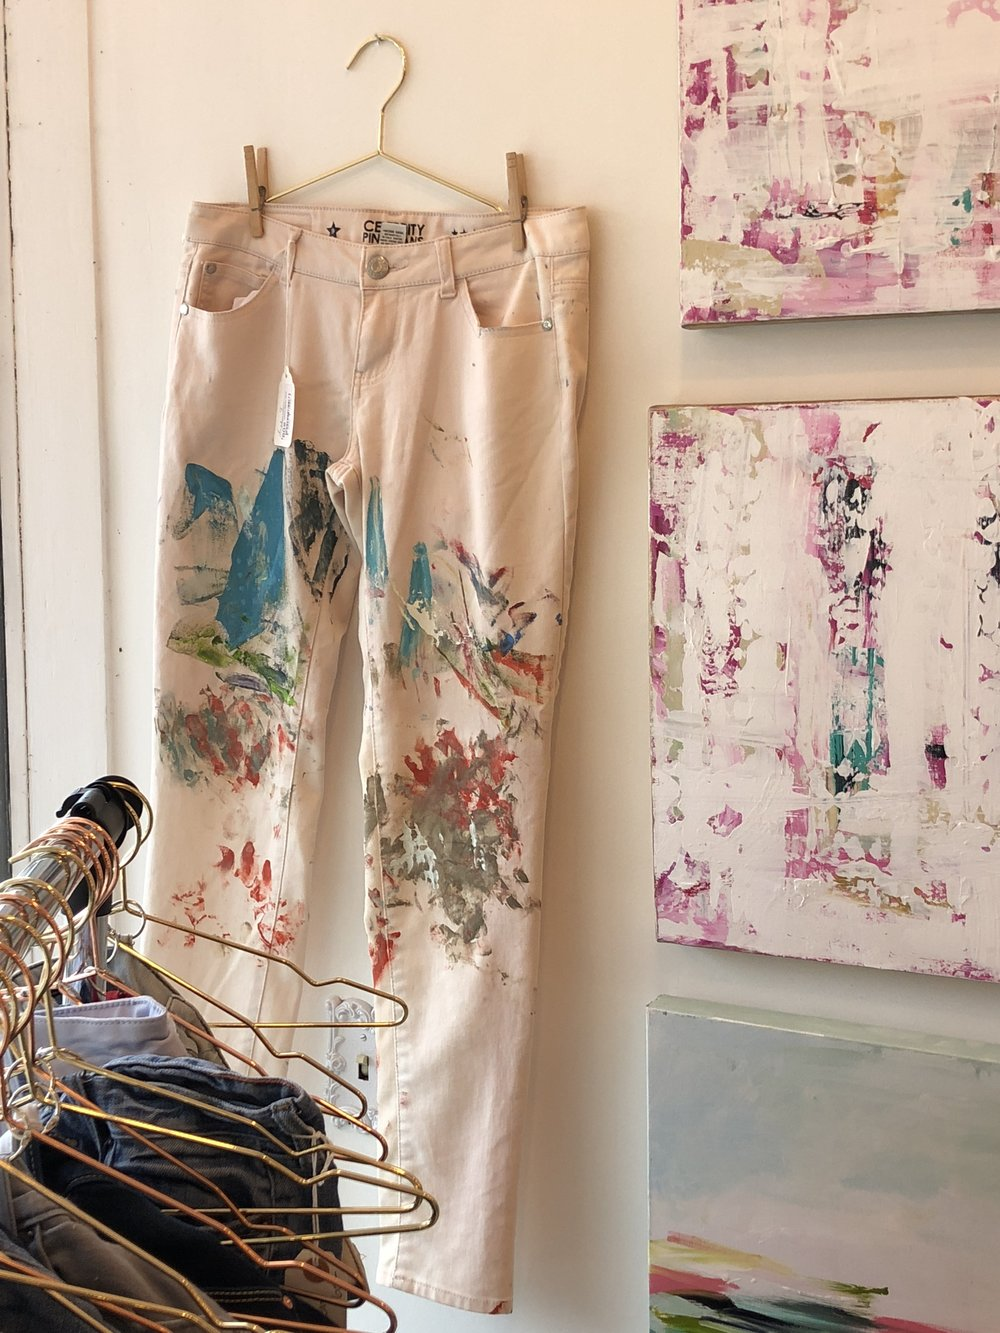 Painted Jeans by Christi Arnette